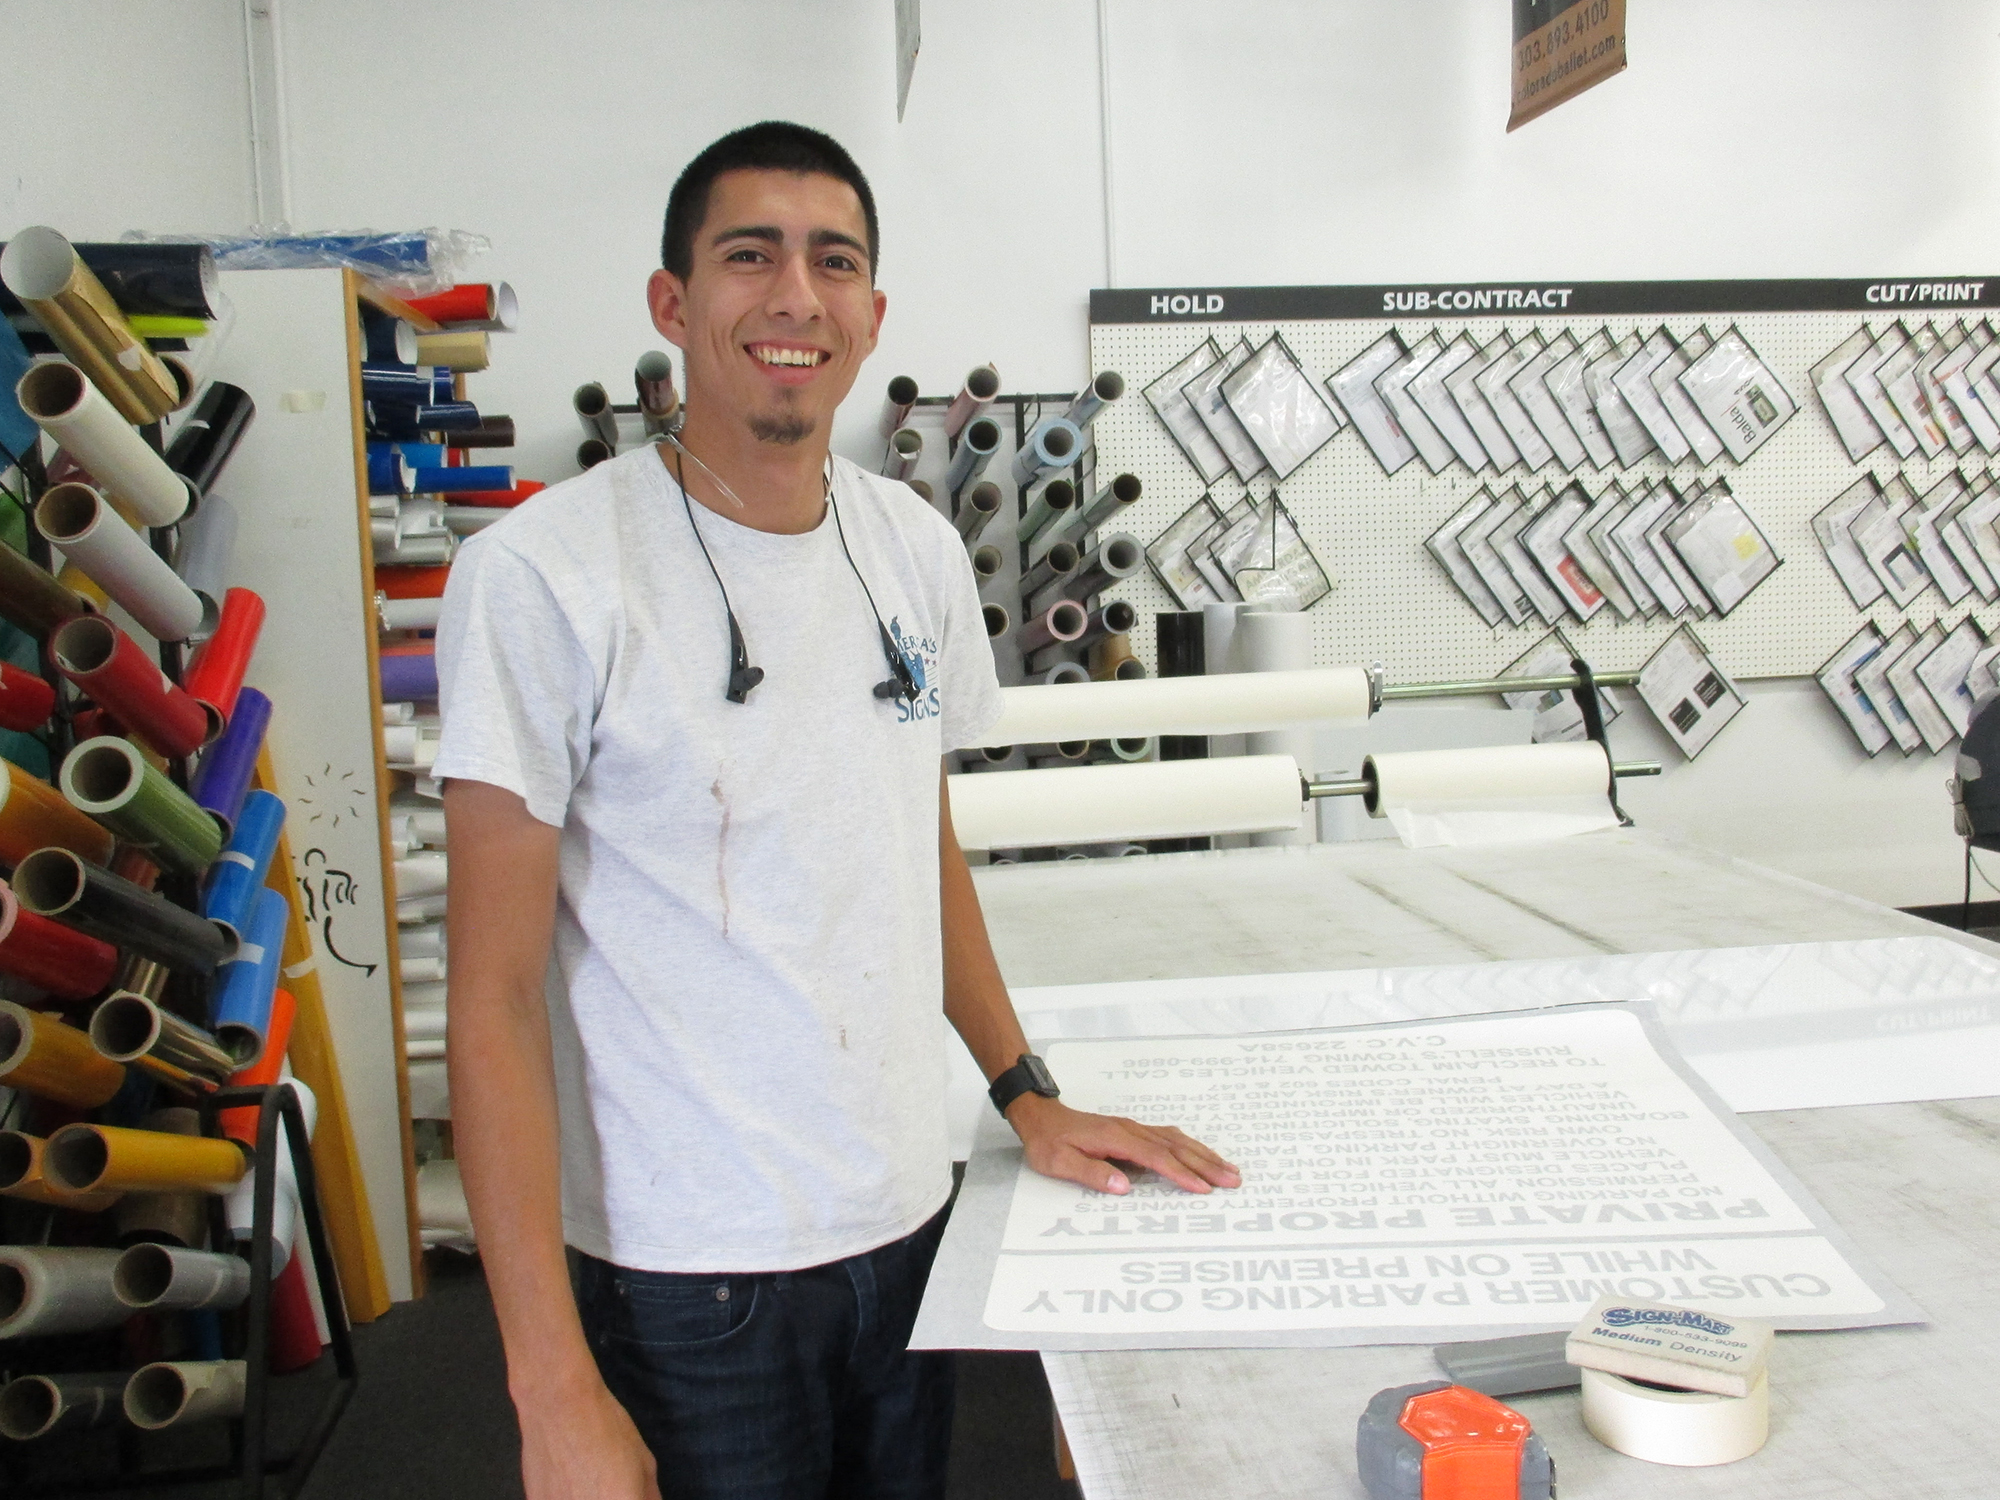 Nick Molina, Sign Designer / Installer